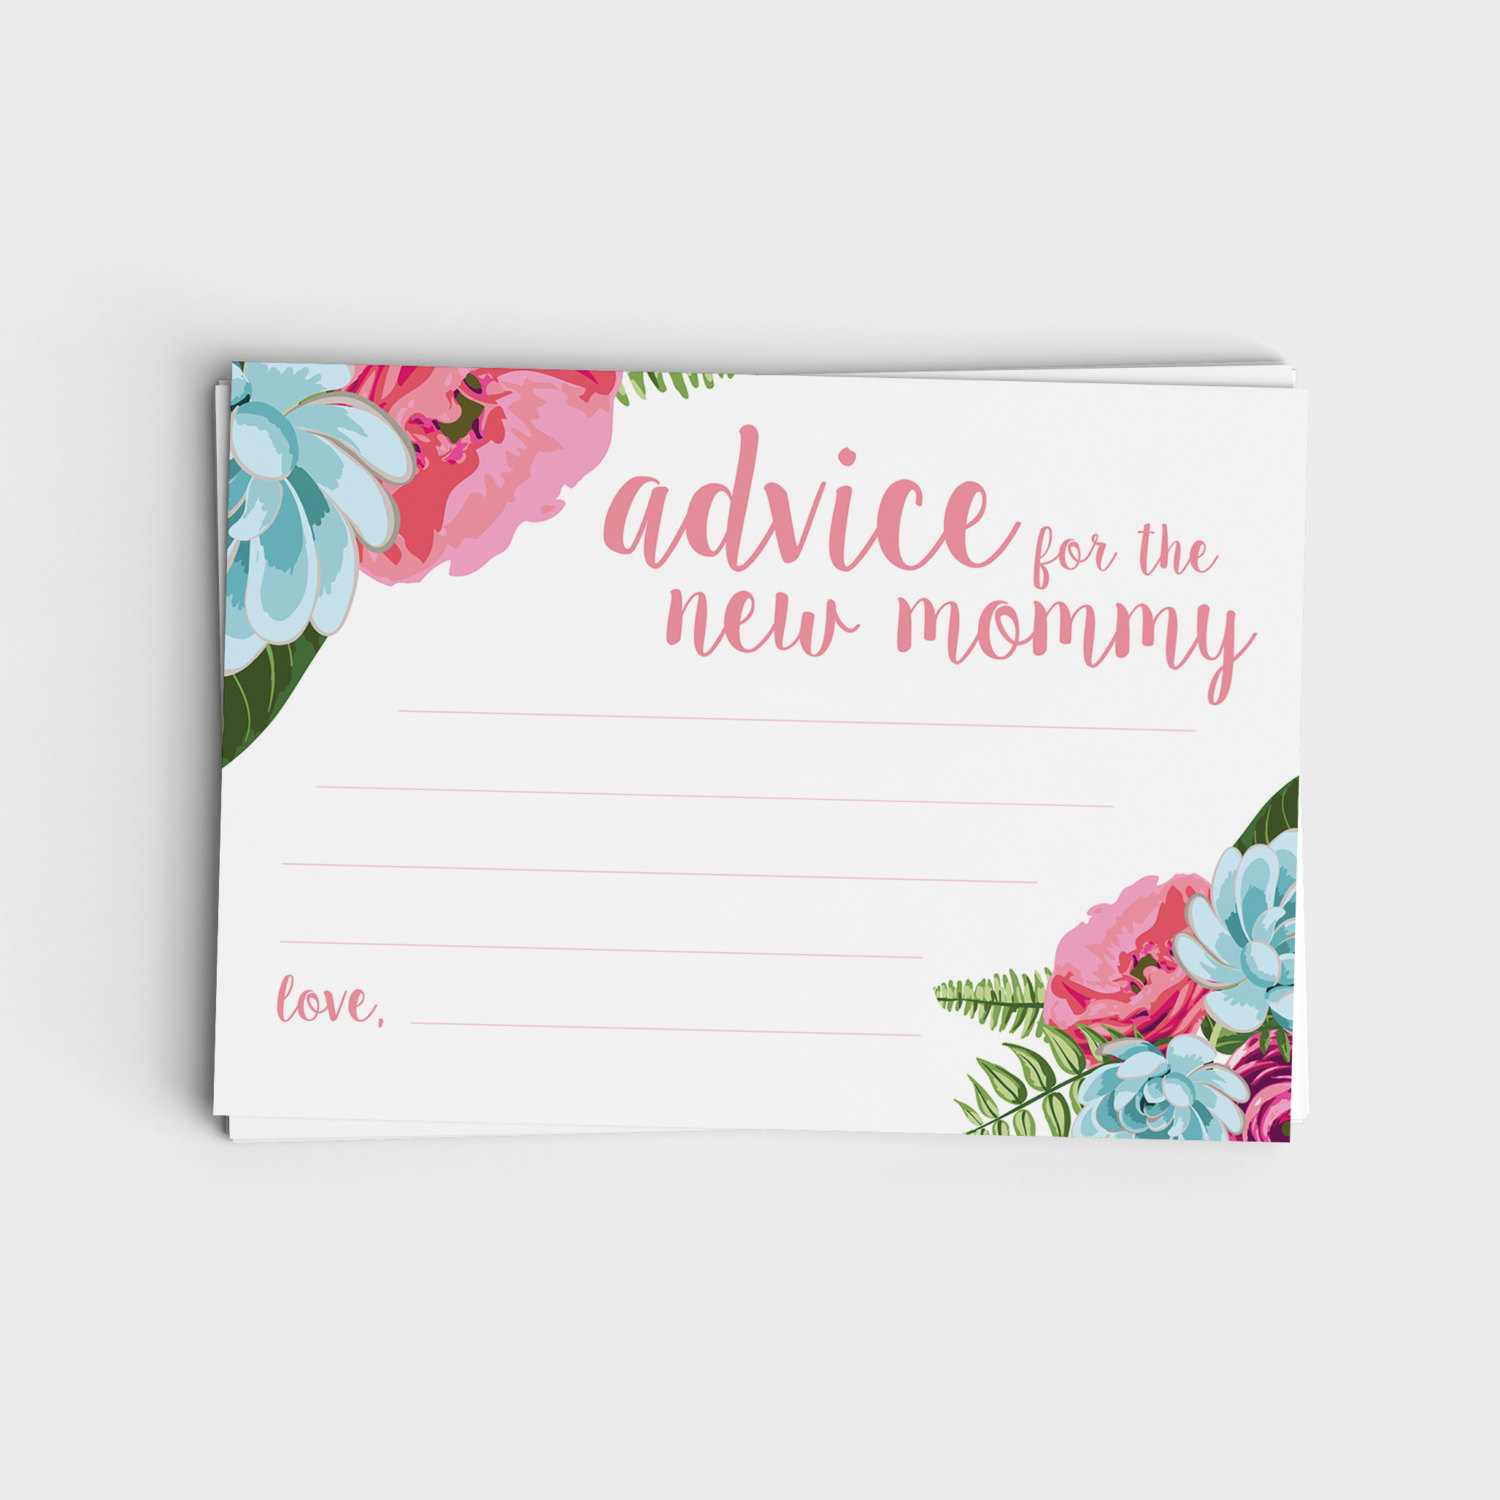 Advice for New Mommy - Pink Floral & Blue Floral